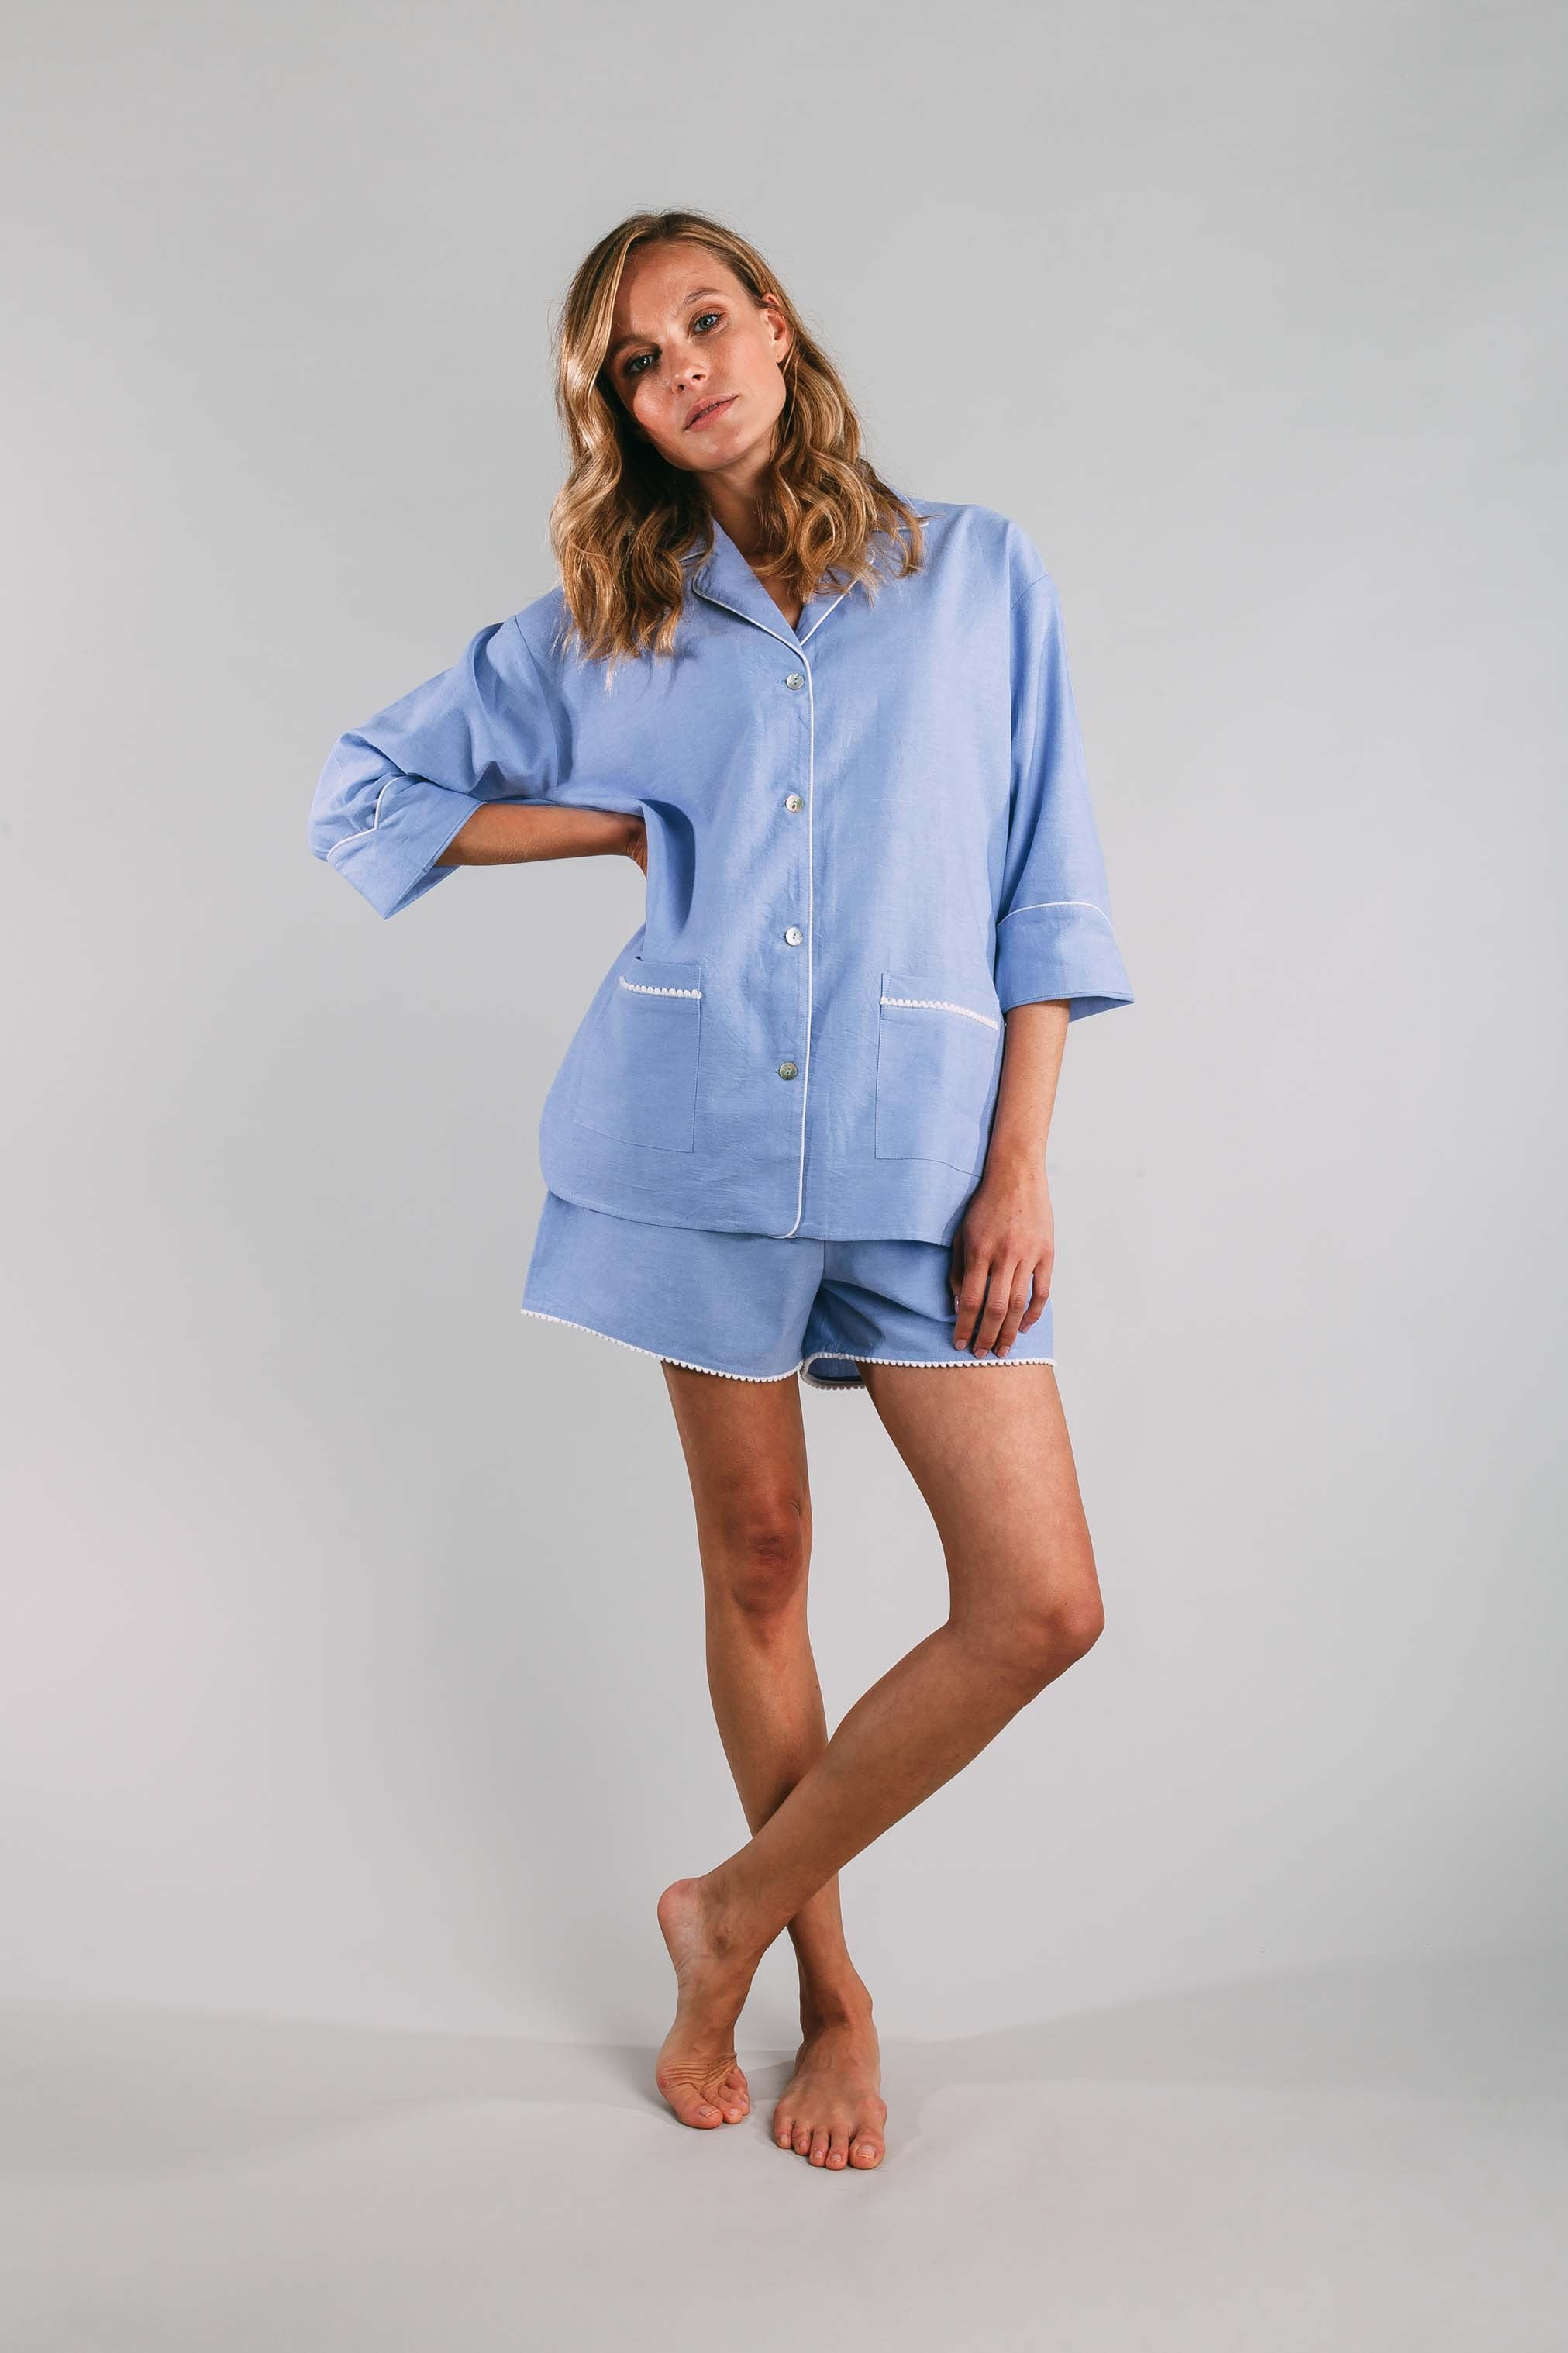 Siân Esther Shorty pyjama set created with blue cotton chambray and pompom trims